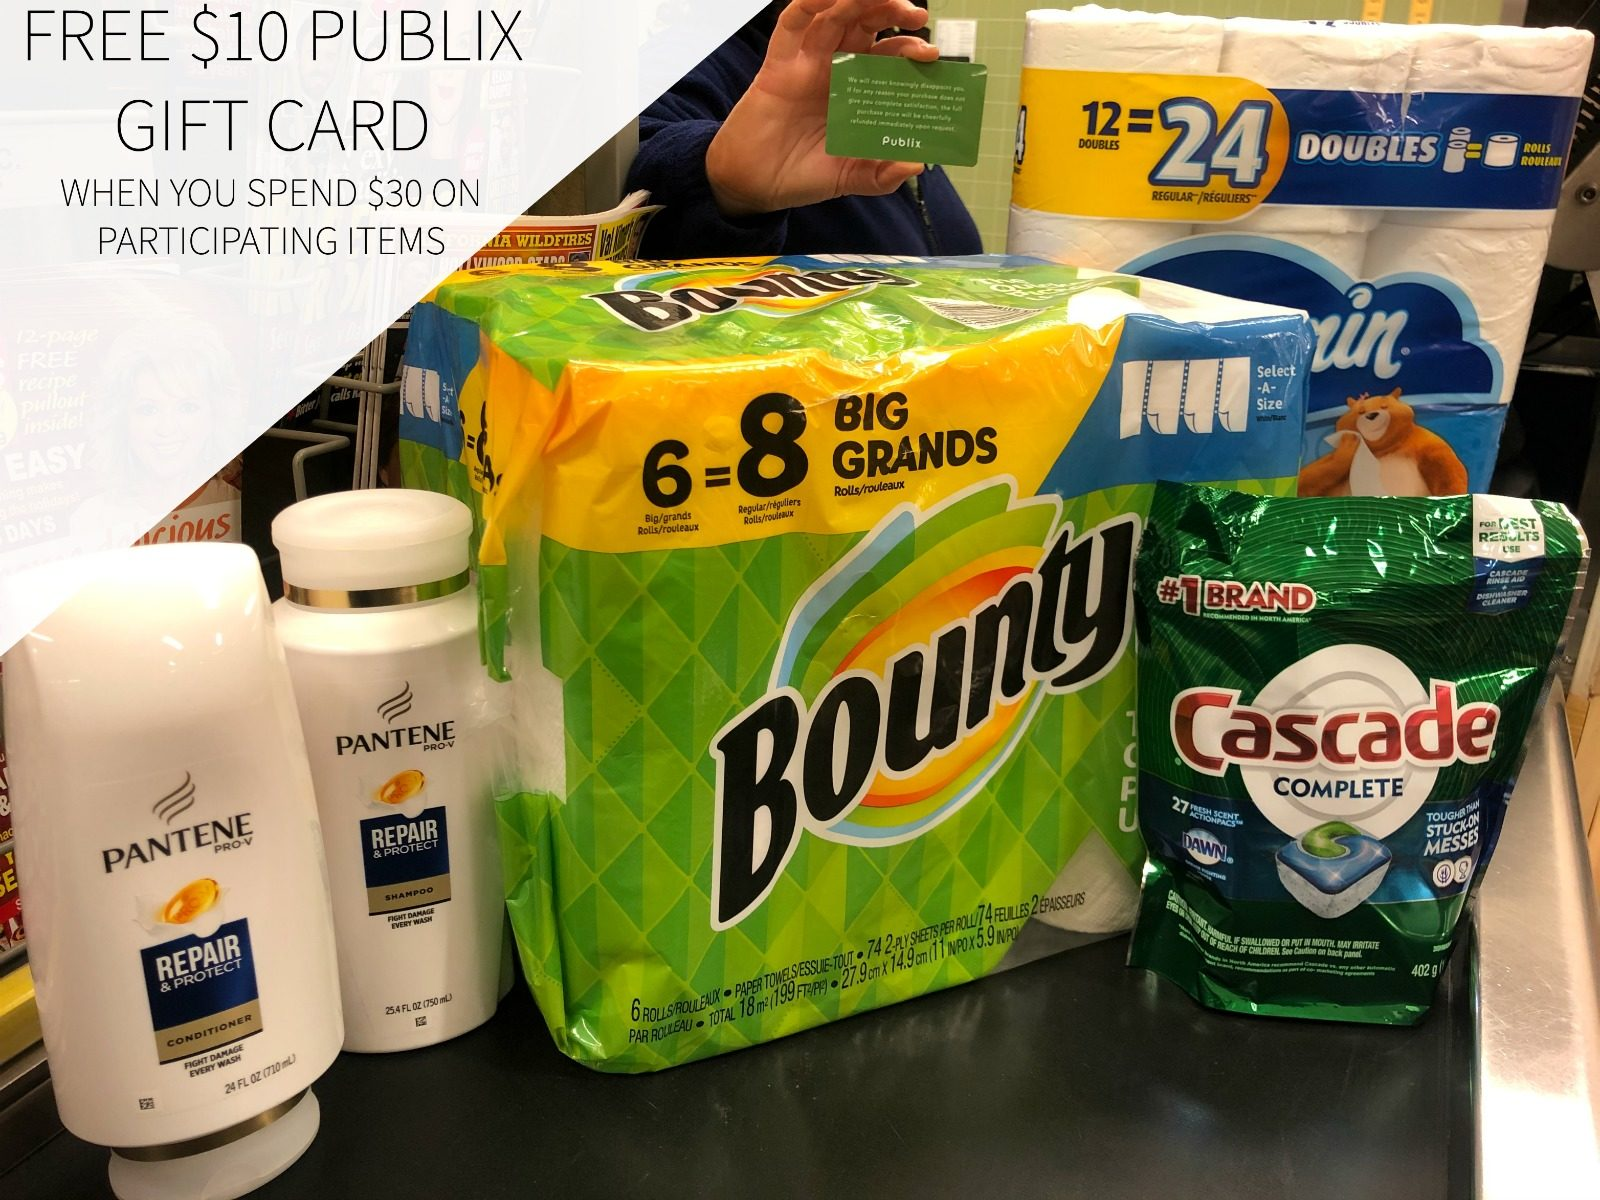 P G For Home For Family For You Promo Returns Get A 10 Publix Gift Card With Your Participating Purchase